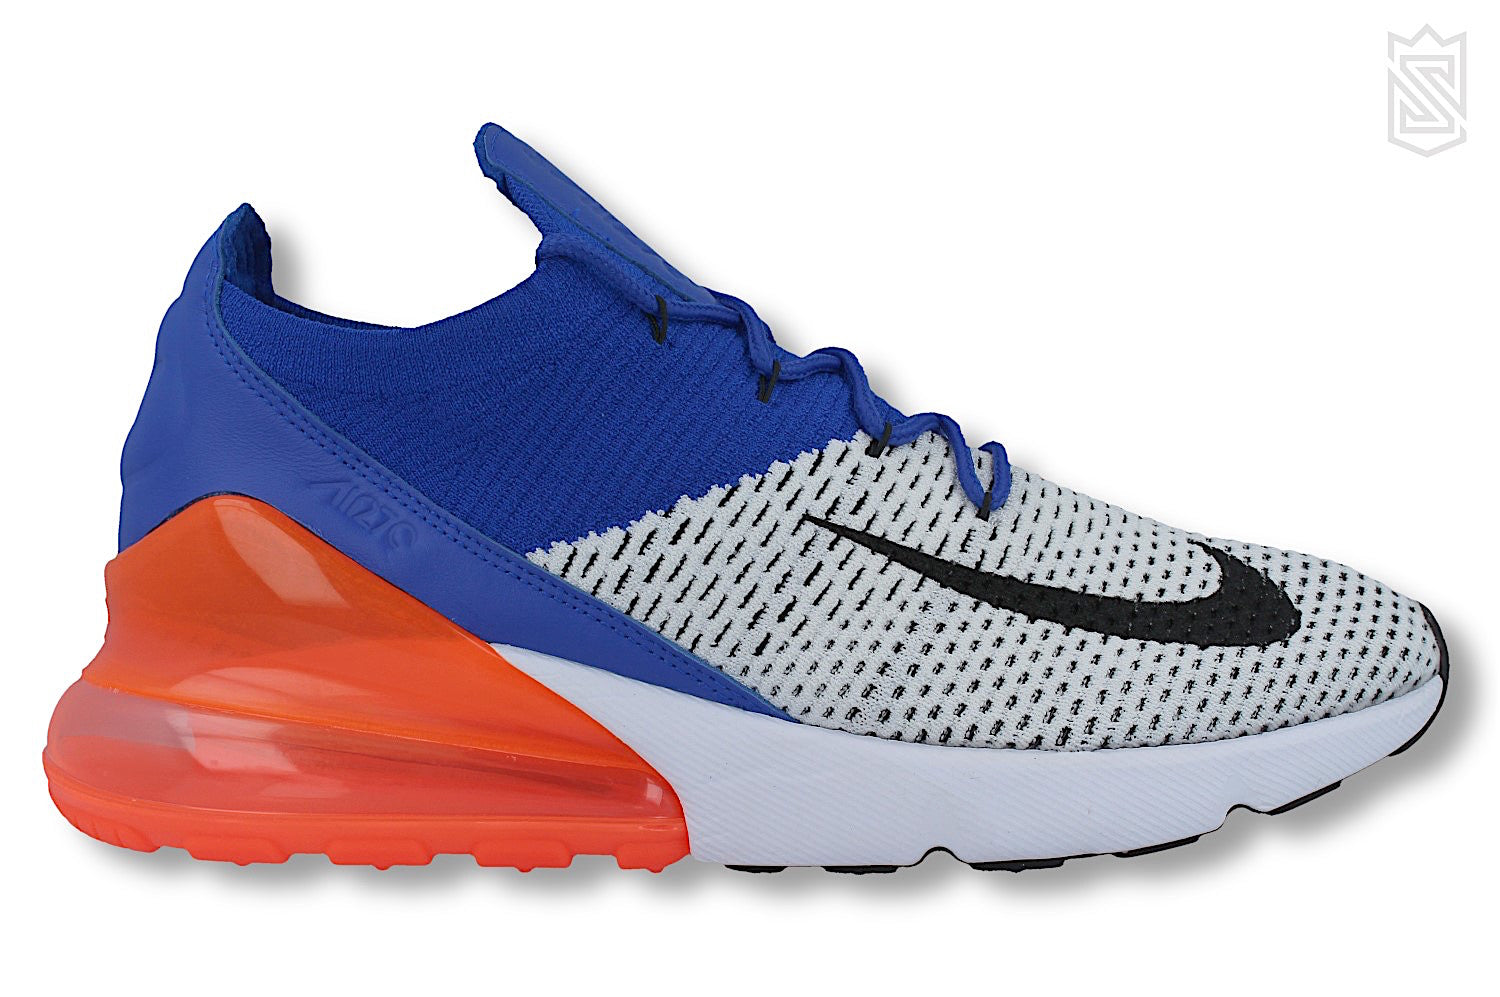 brand new 80f8a eed01 ... cheapest air max 270 flyknit schrittmacher shop 6bc3e 929ab